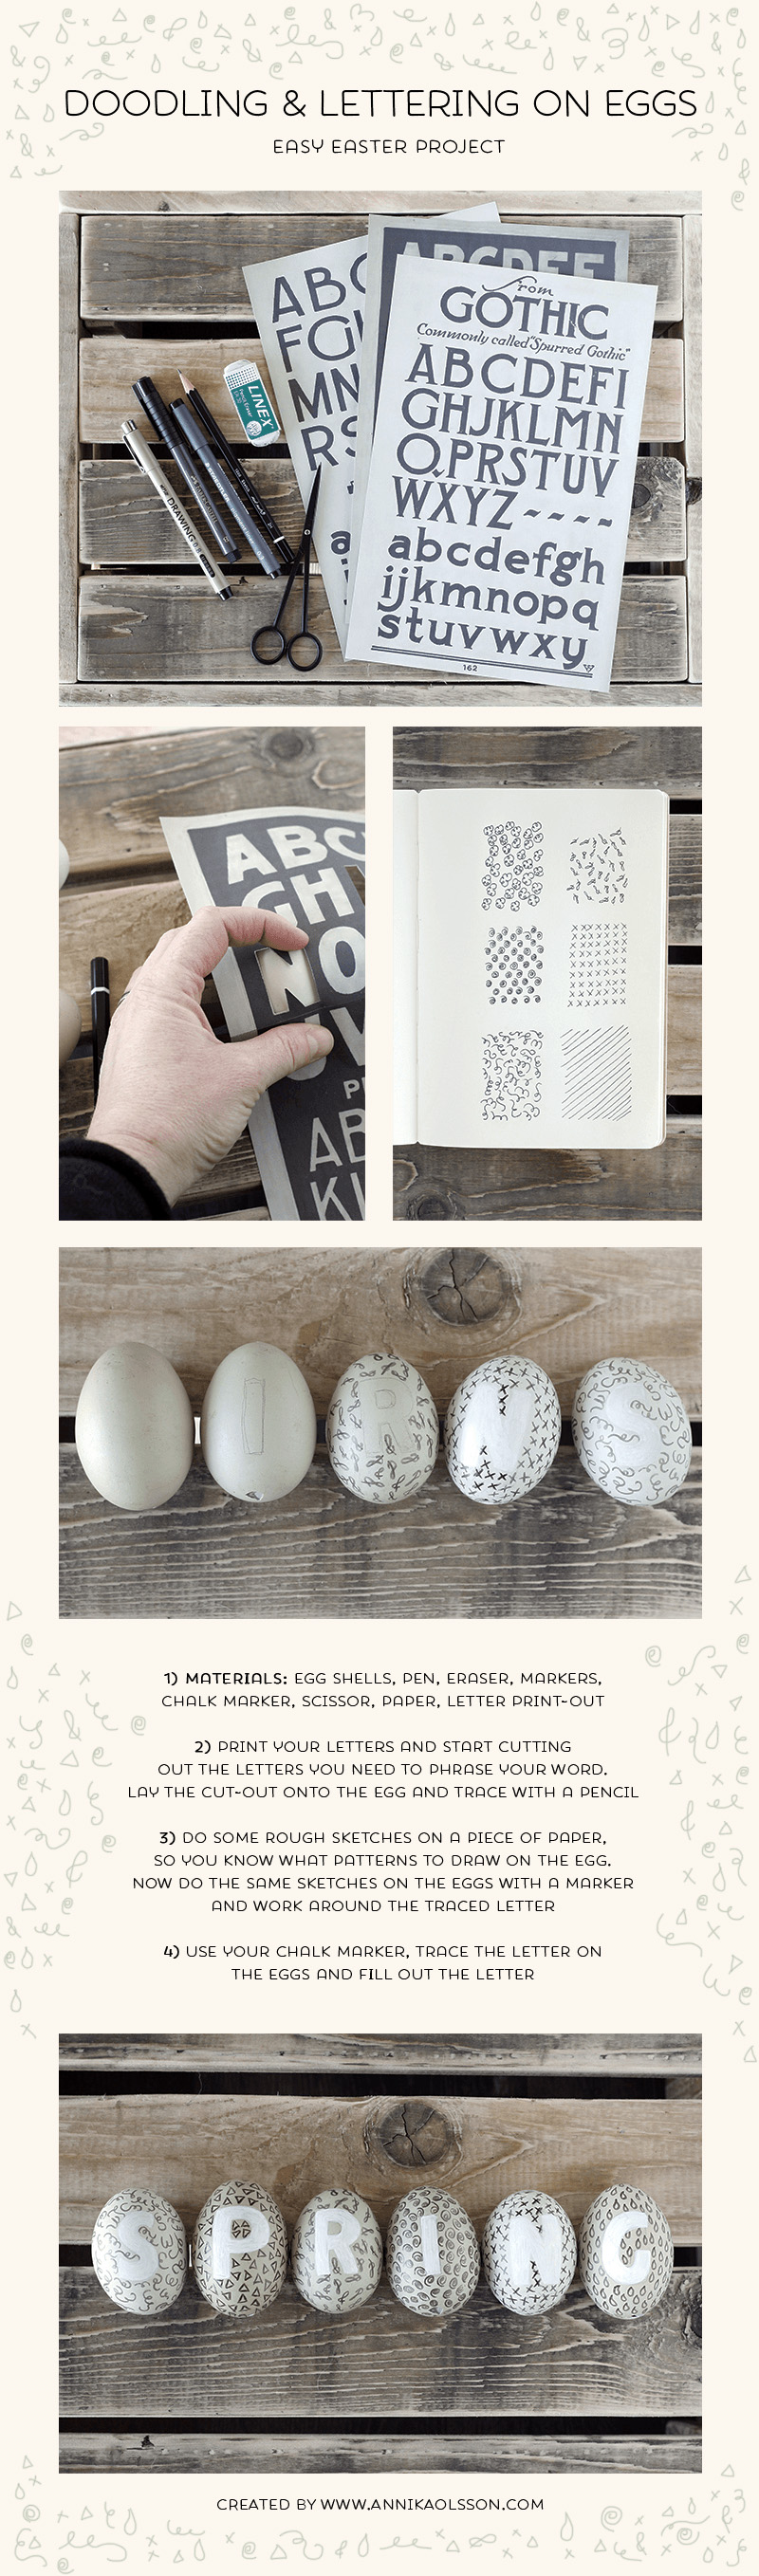 lettring and oodling on eggs